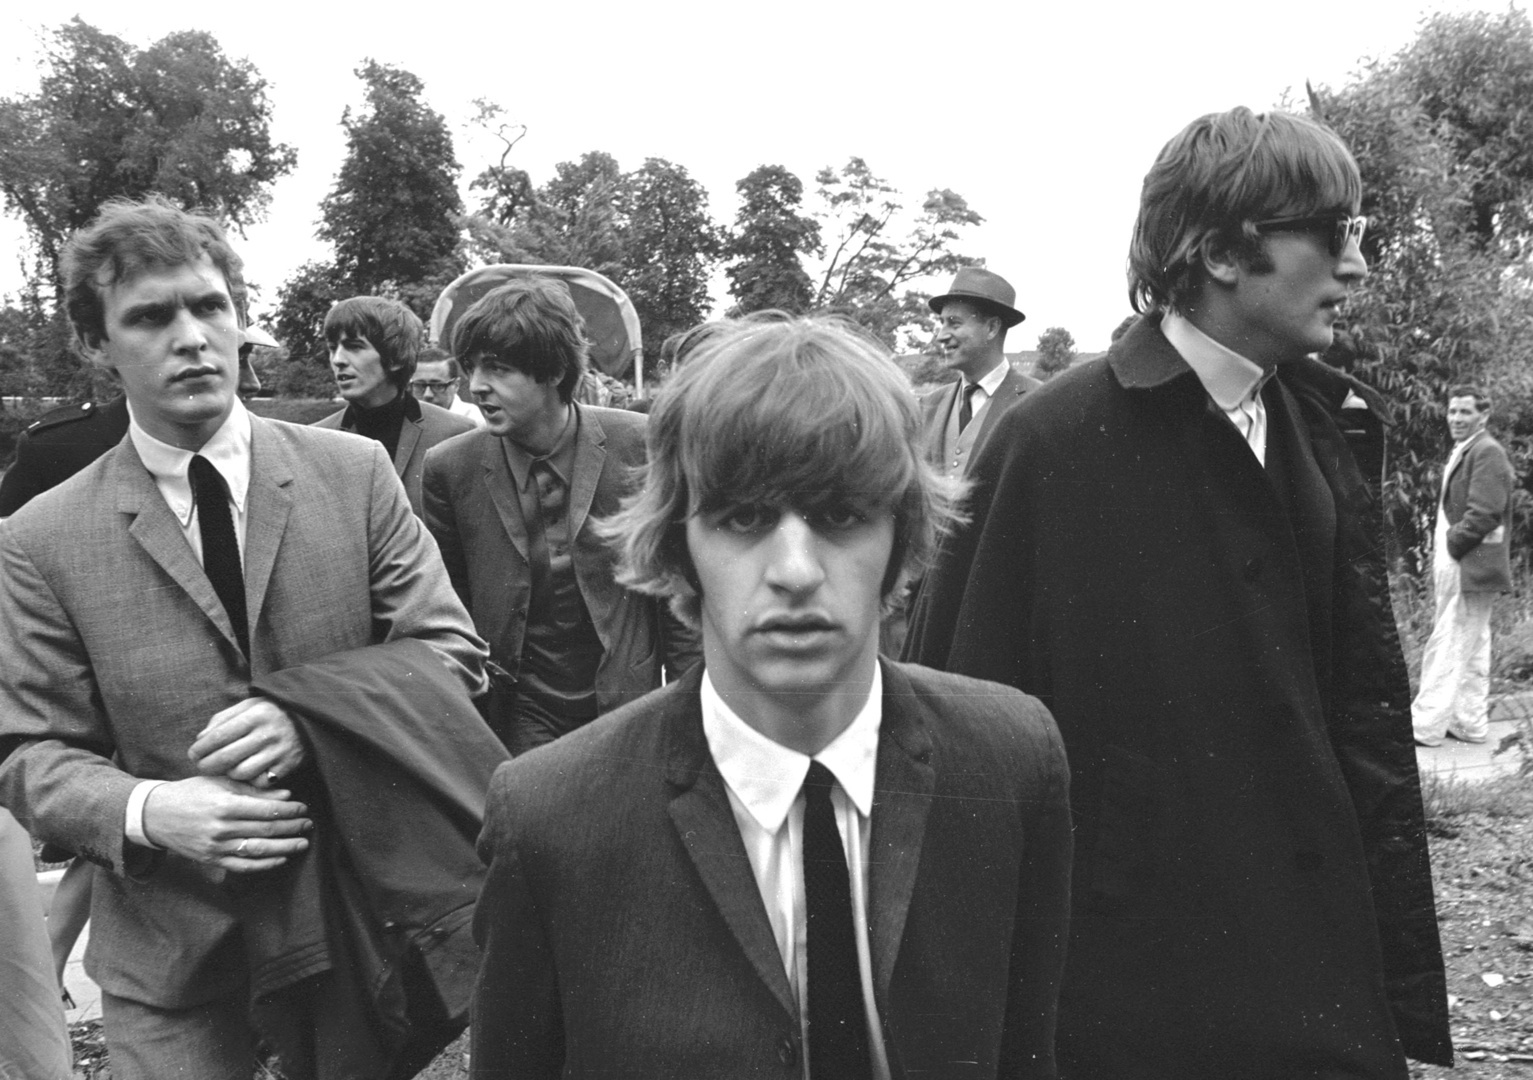 Ringo as Front Man, Teddington, 1965